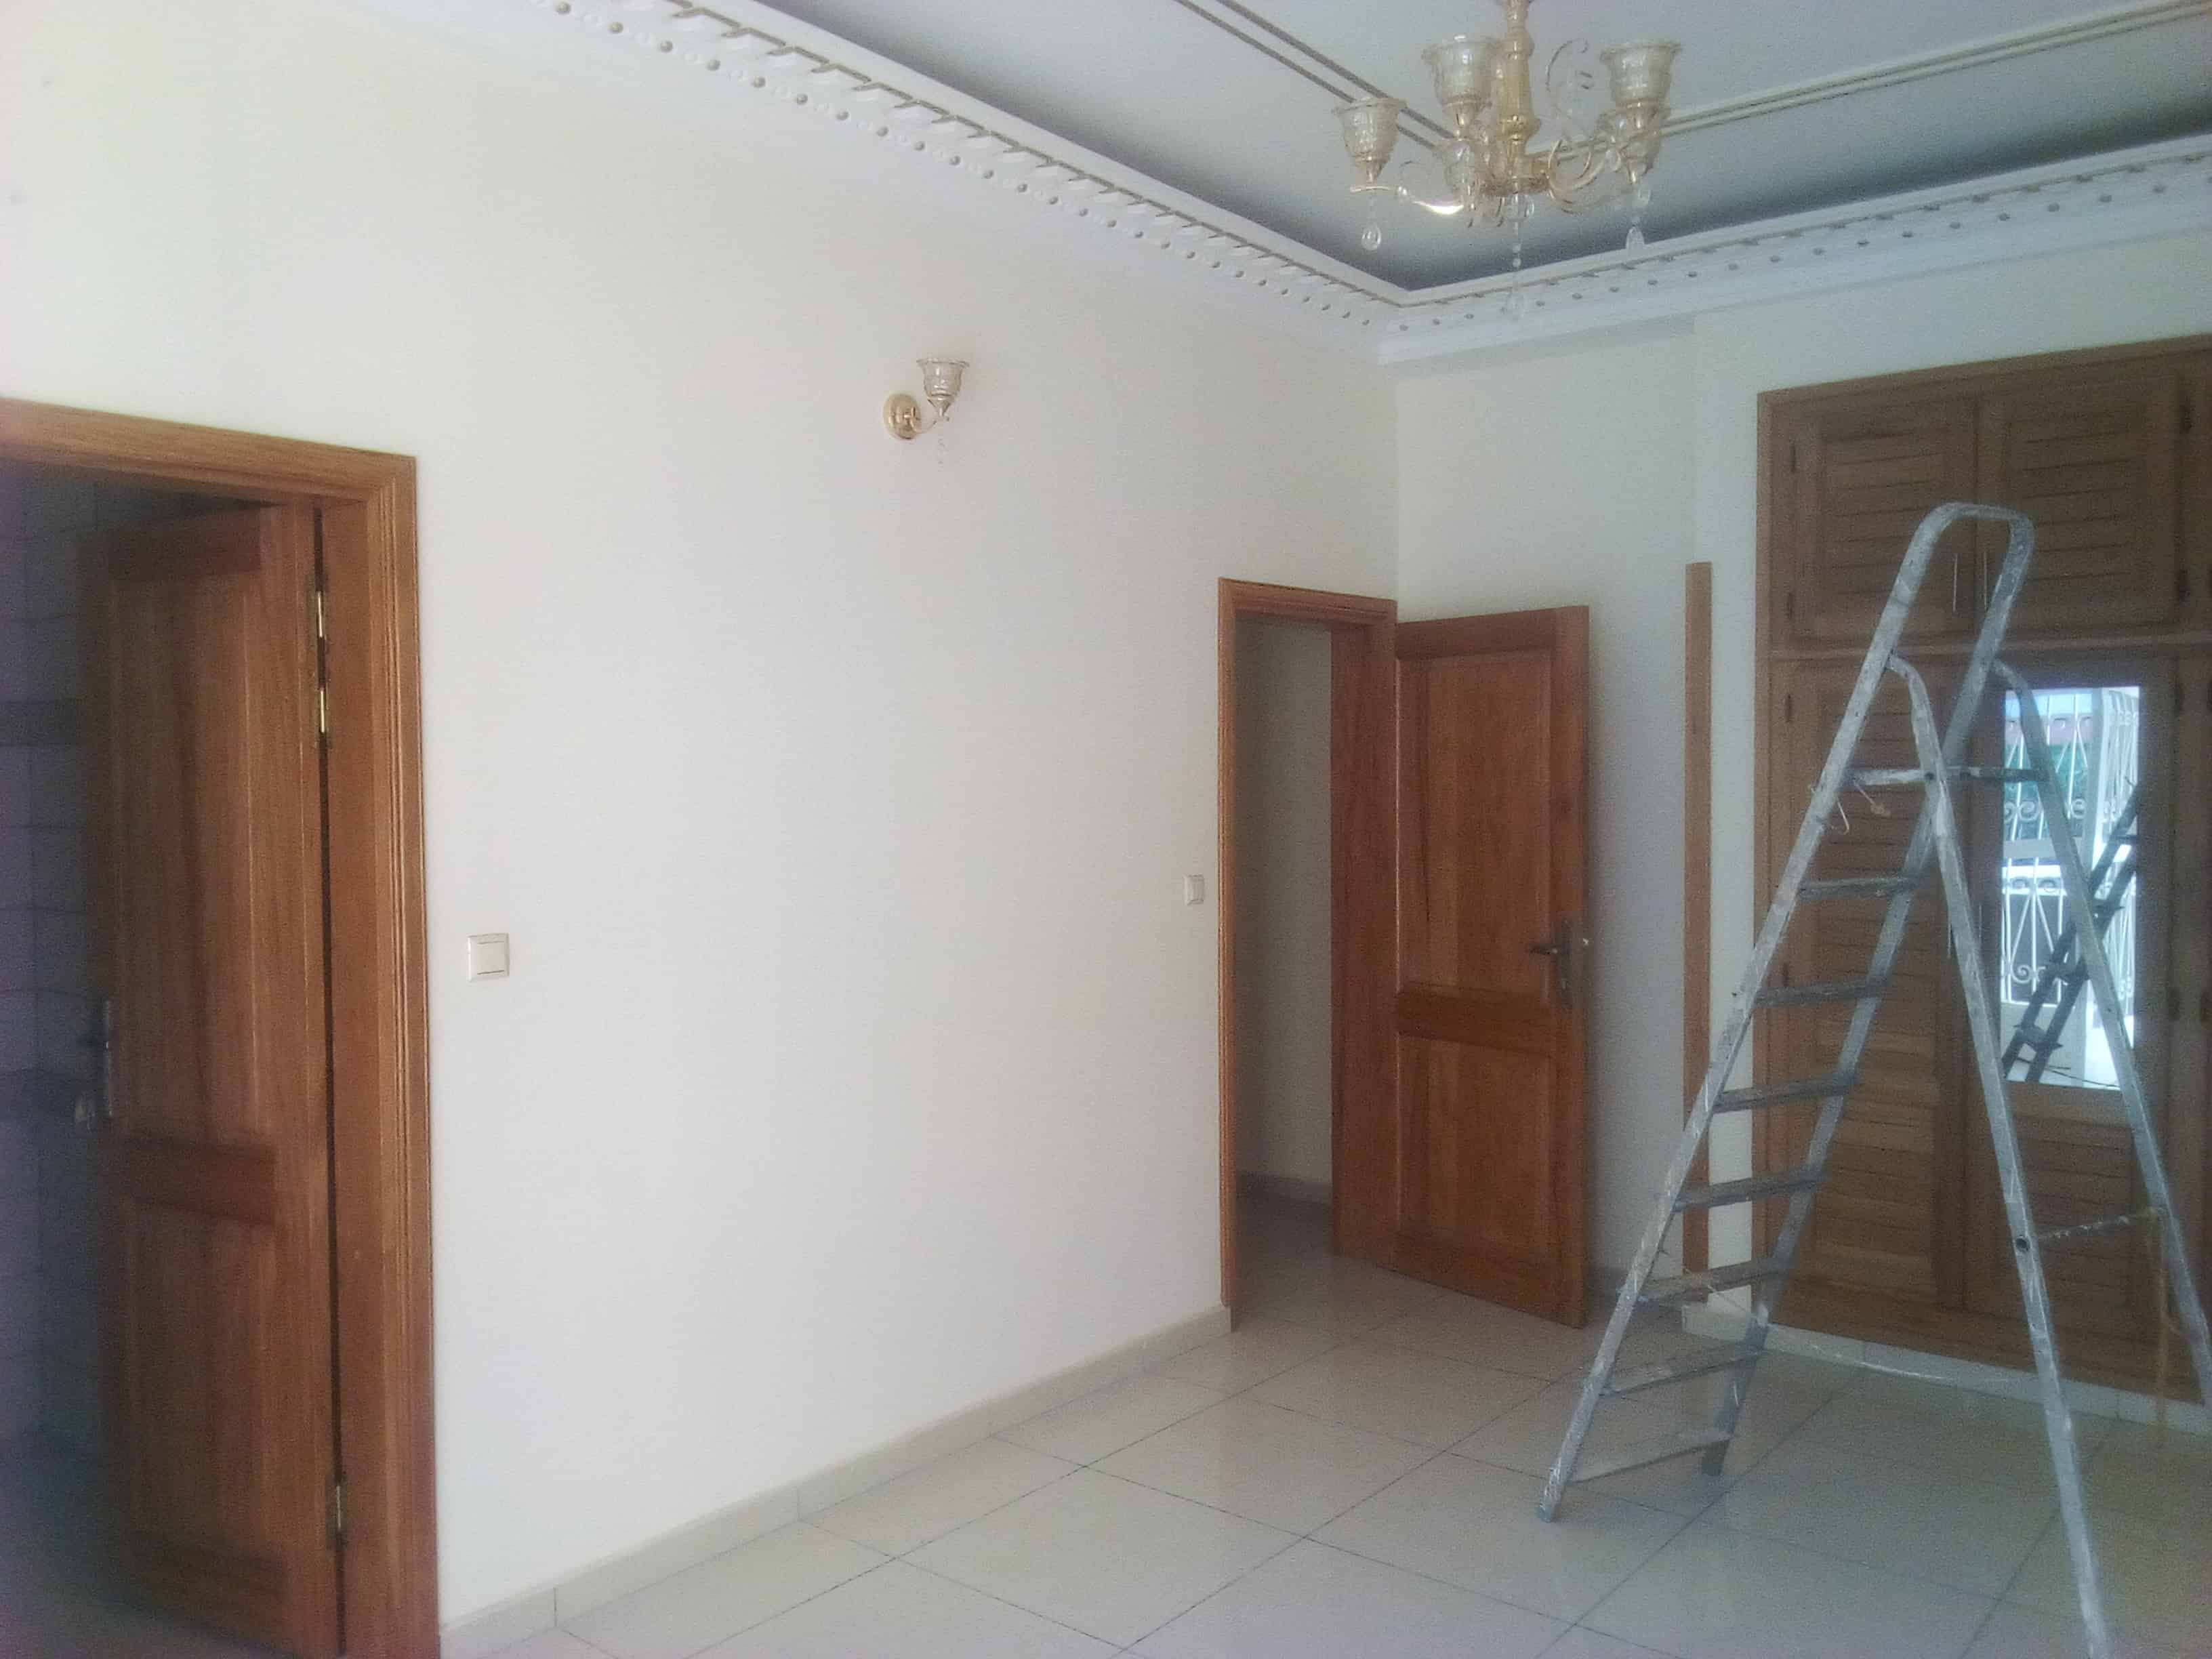 Apartment to rent - Yaoundé, Bastos, Ambassade de chine - 1 living room(s), 2 bedroom(s), 3 bathroom(s) - 500 000 FCFA / month